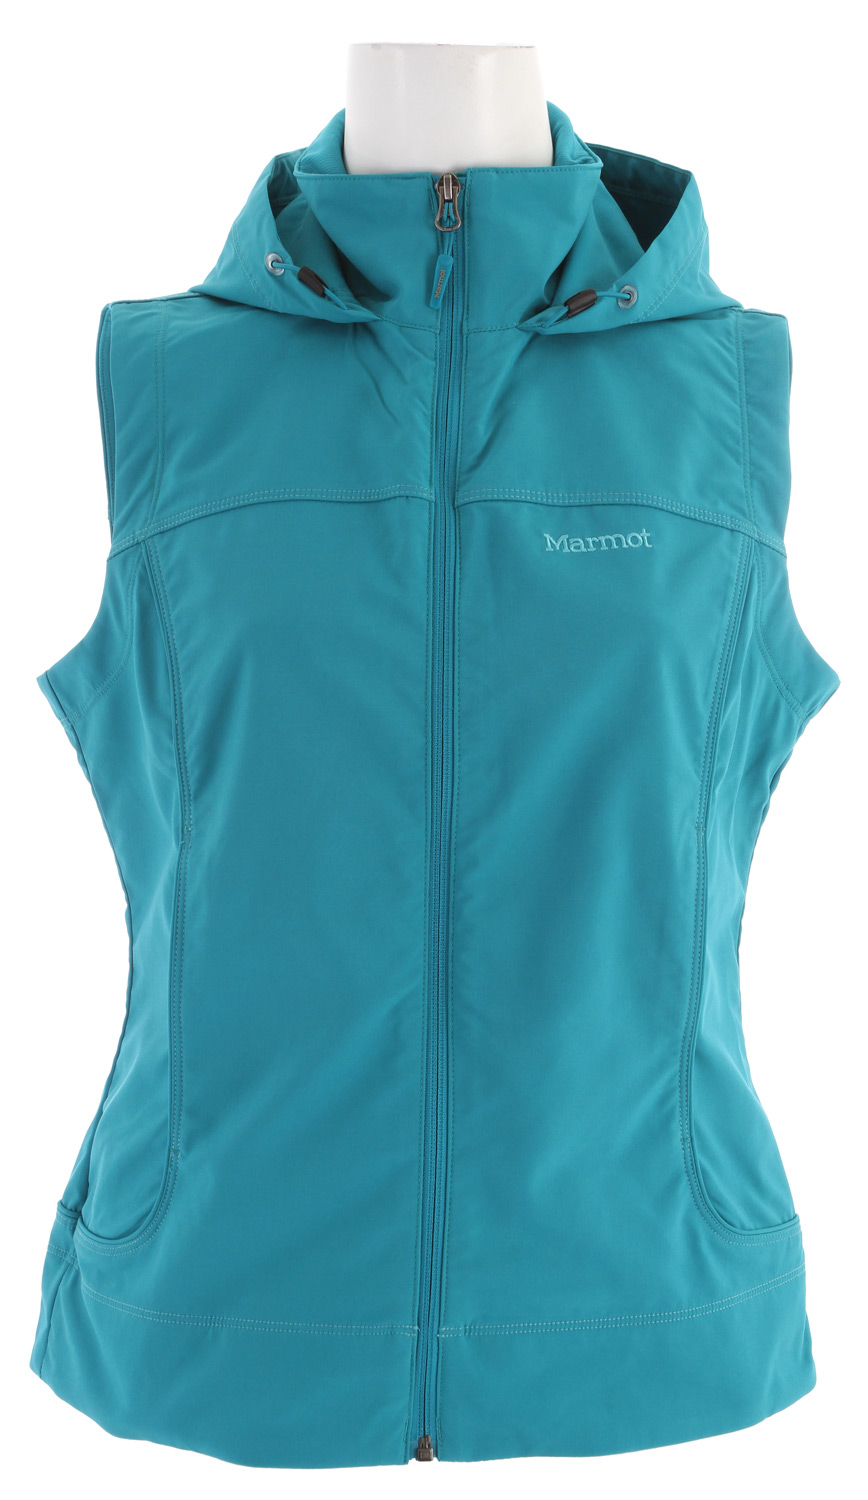 Key Features of the Marmot Summerset Vest: Marmot M3 Softshell Water Repellent and Breathable 4-Way Stretch Fabric Attached Adjustable Hood Zippered Handwarmer Pockets Rib Knit Collar Sized Specifically for Women Weight 1 lb 4.1 oz (569.8g) Materials: Softshell Double Weave 88% Polyester/ 12% Elastane Stretch 6.6 oz/ yd Center Back Length: 24.13 in Fit: Regular Fit - $70.95